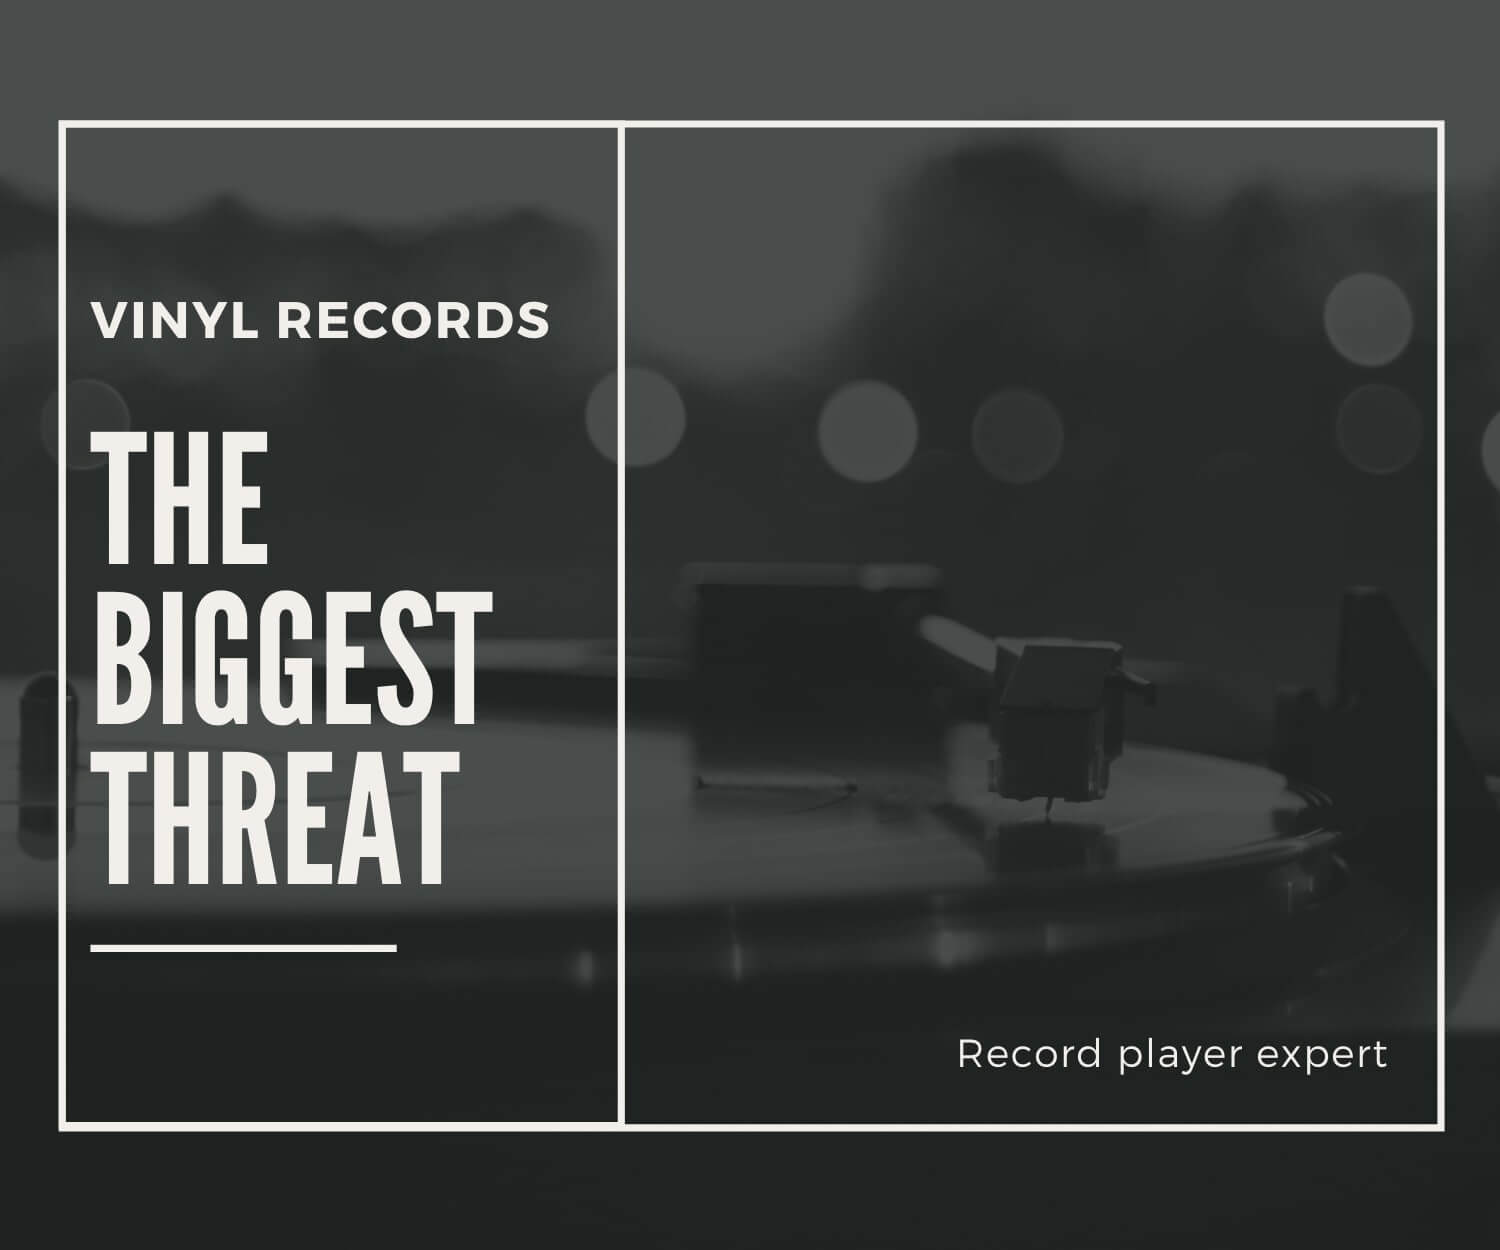 the biggest threat to vinyl records